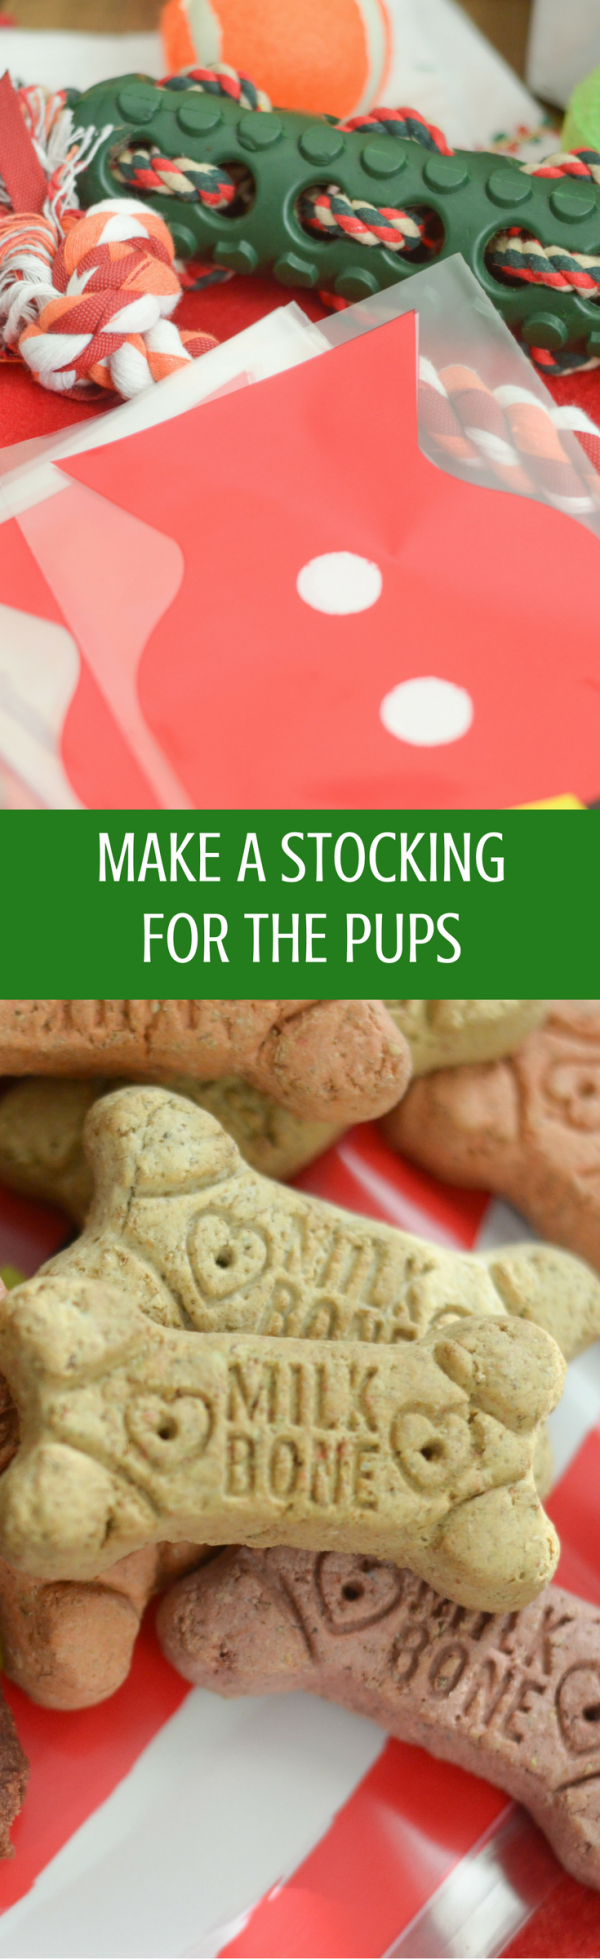 Make a Stocking for the Pups